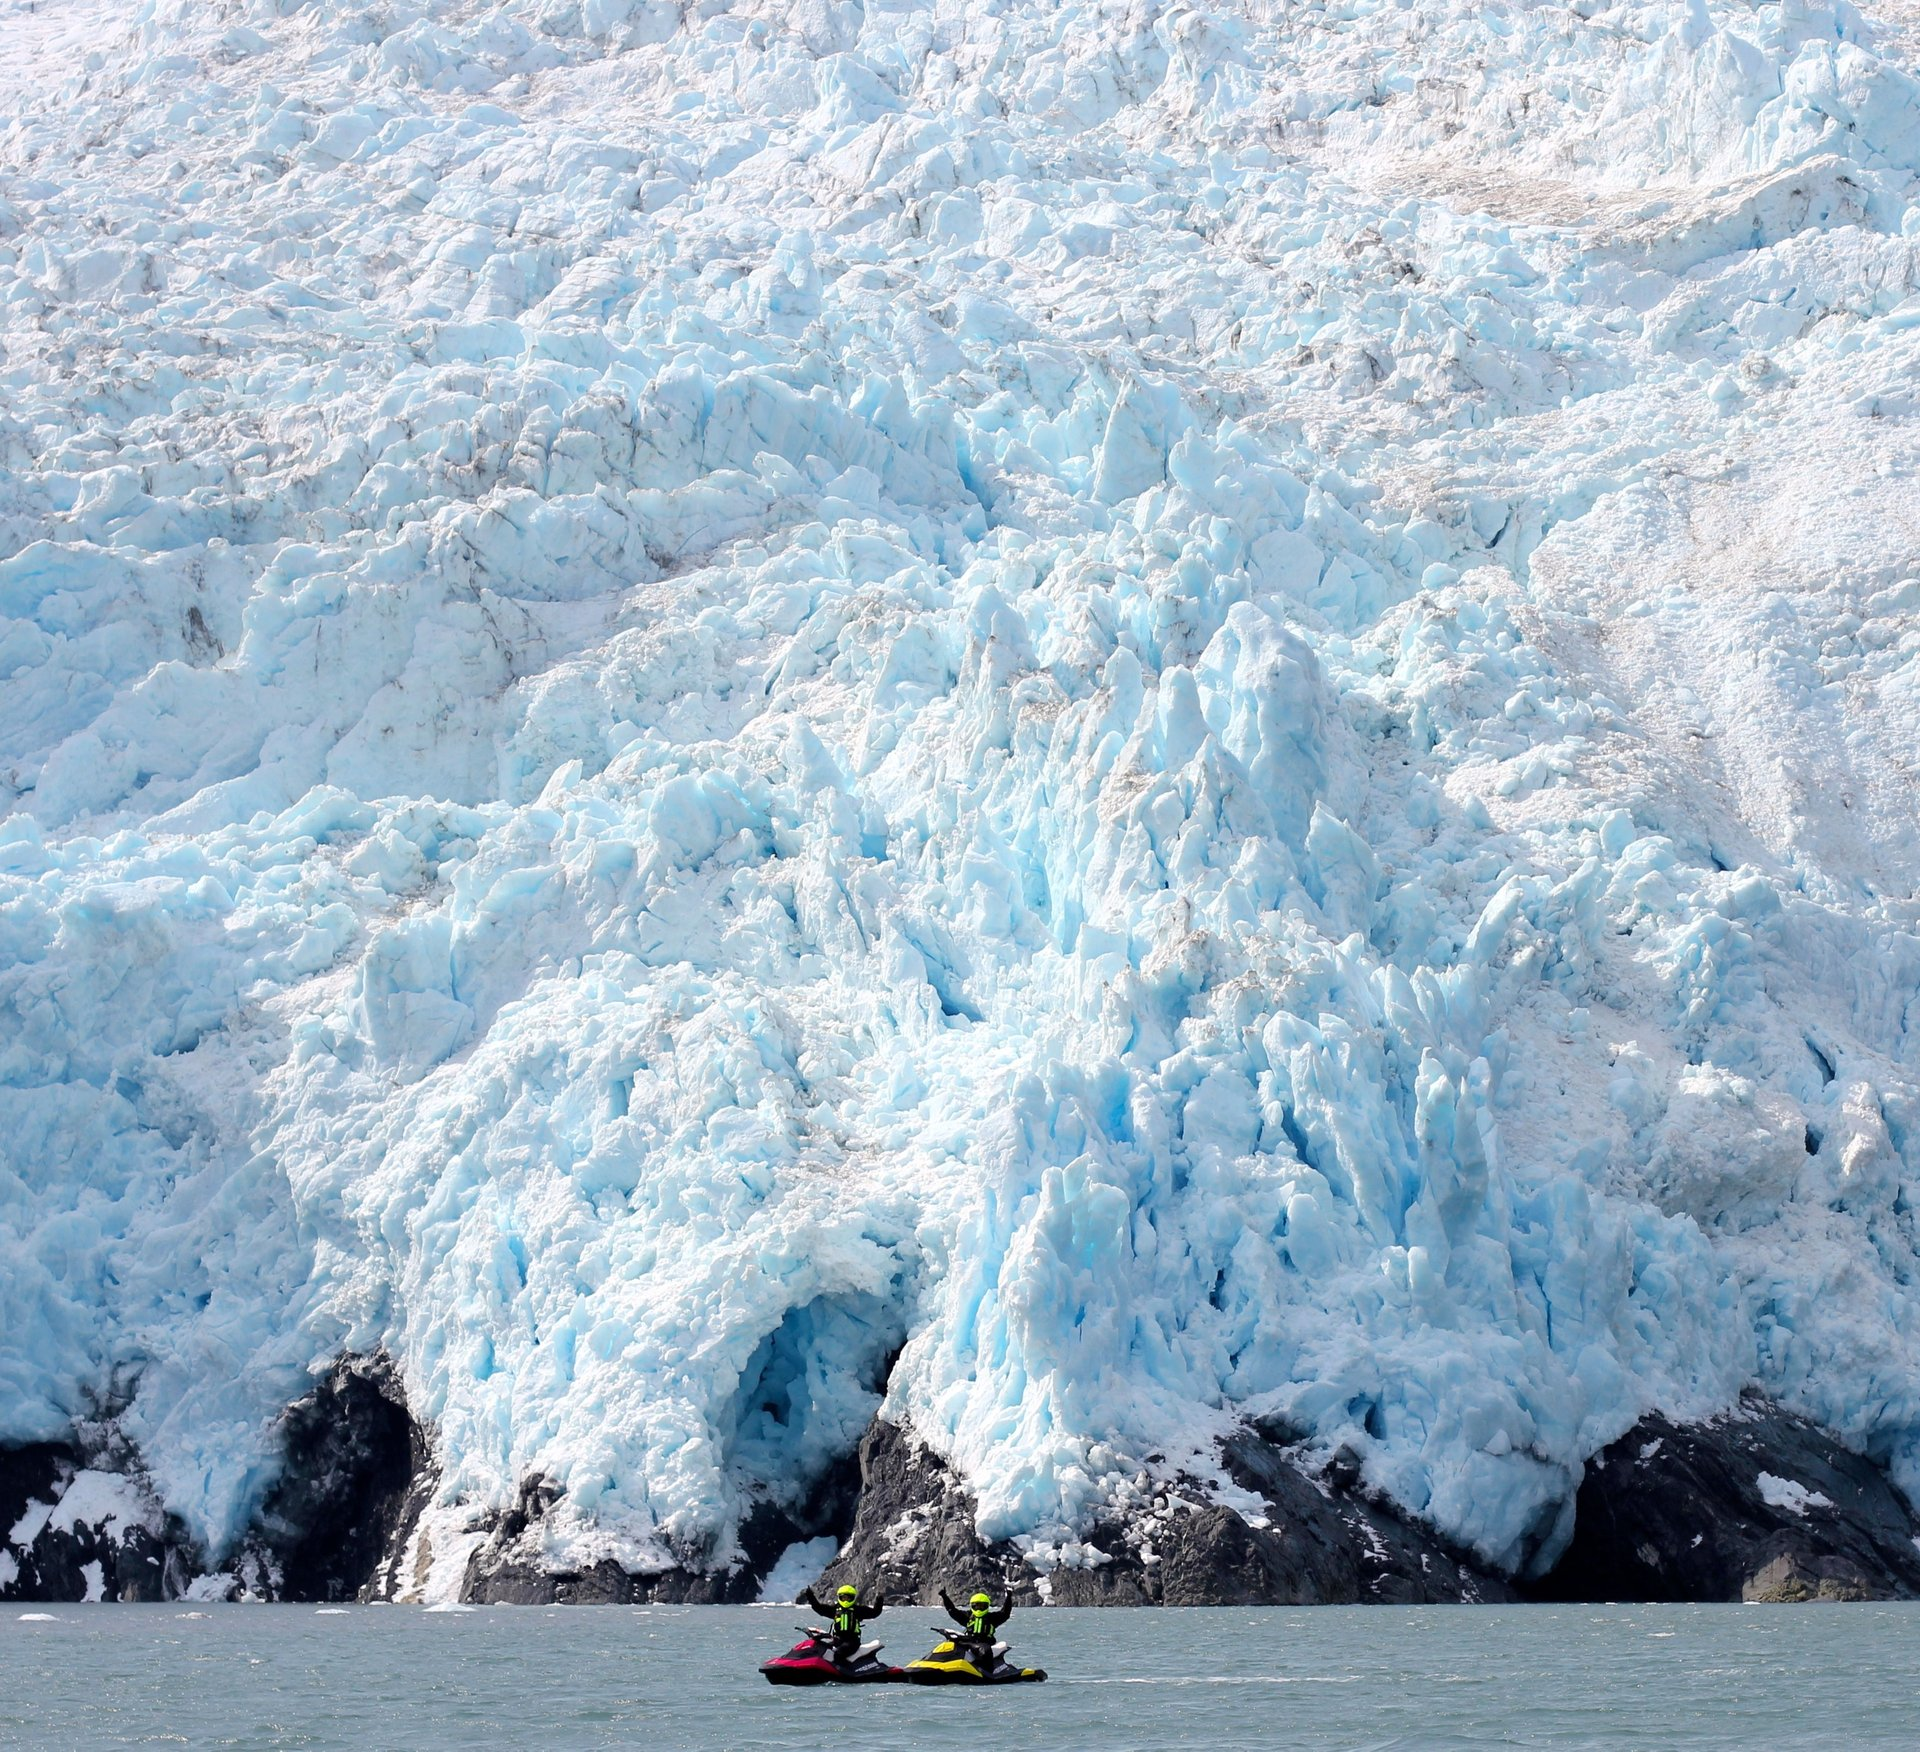 Glacier Jet Skiing in Alaska - Best Season 2020